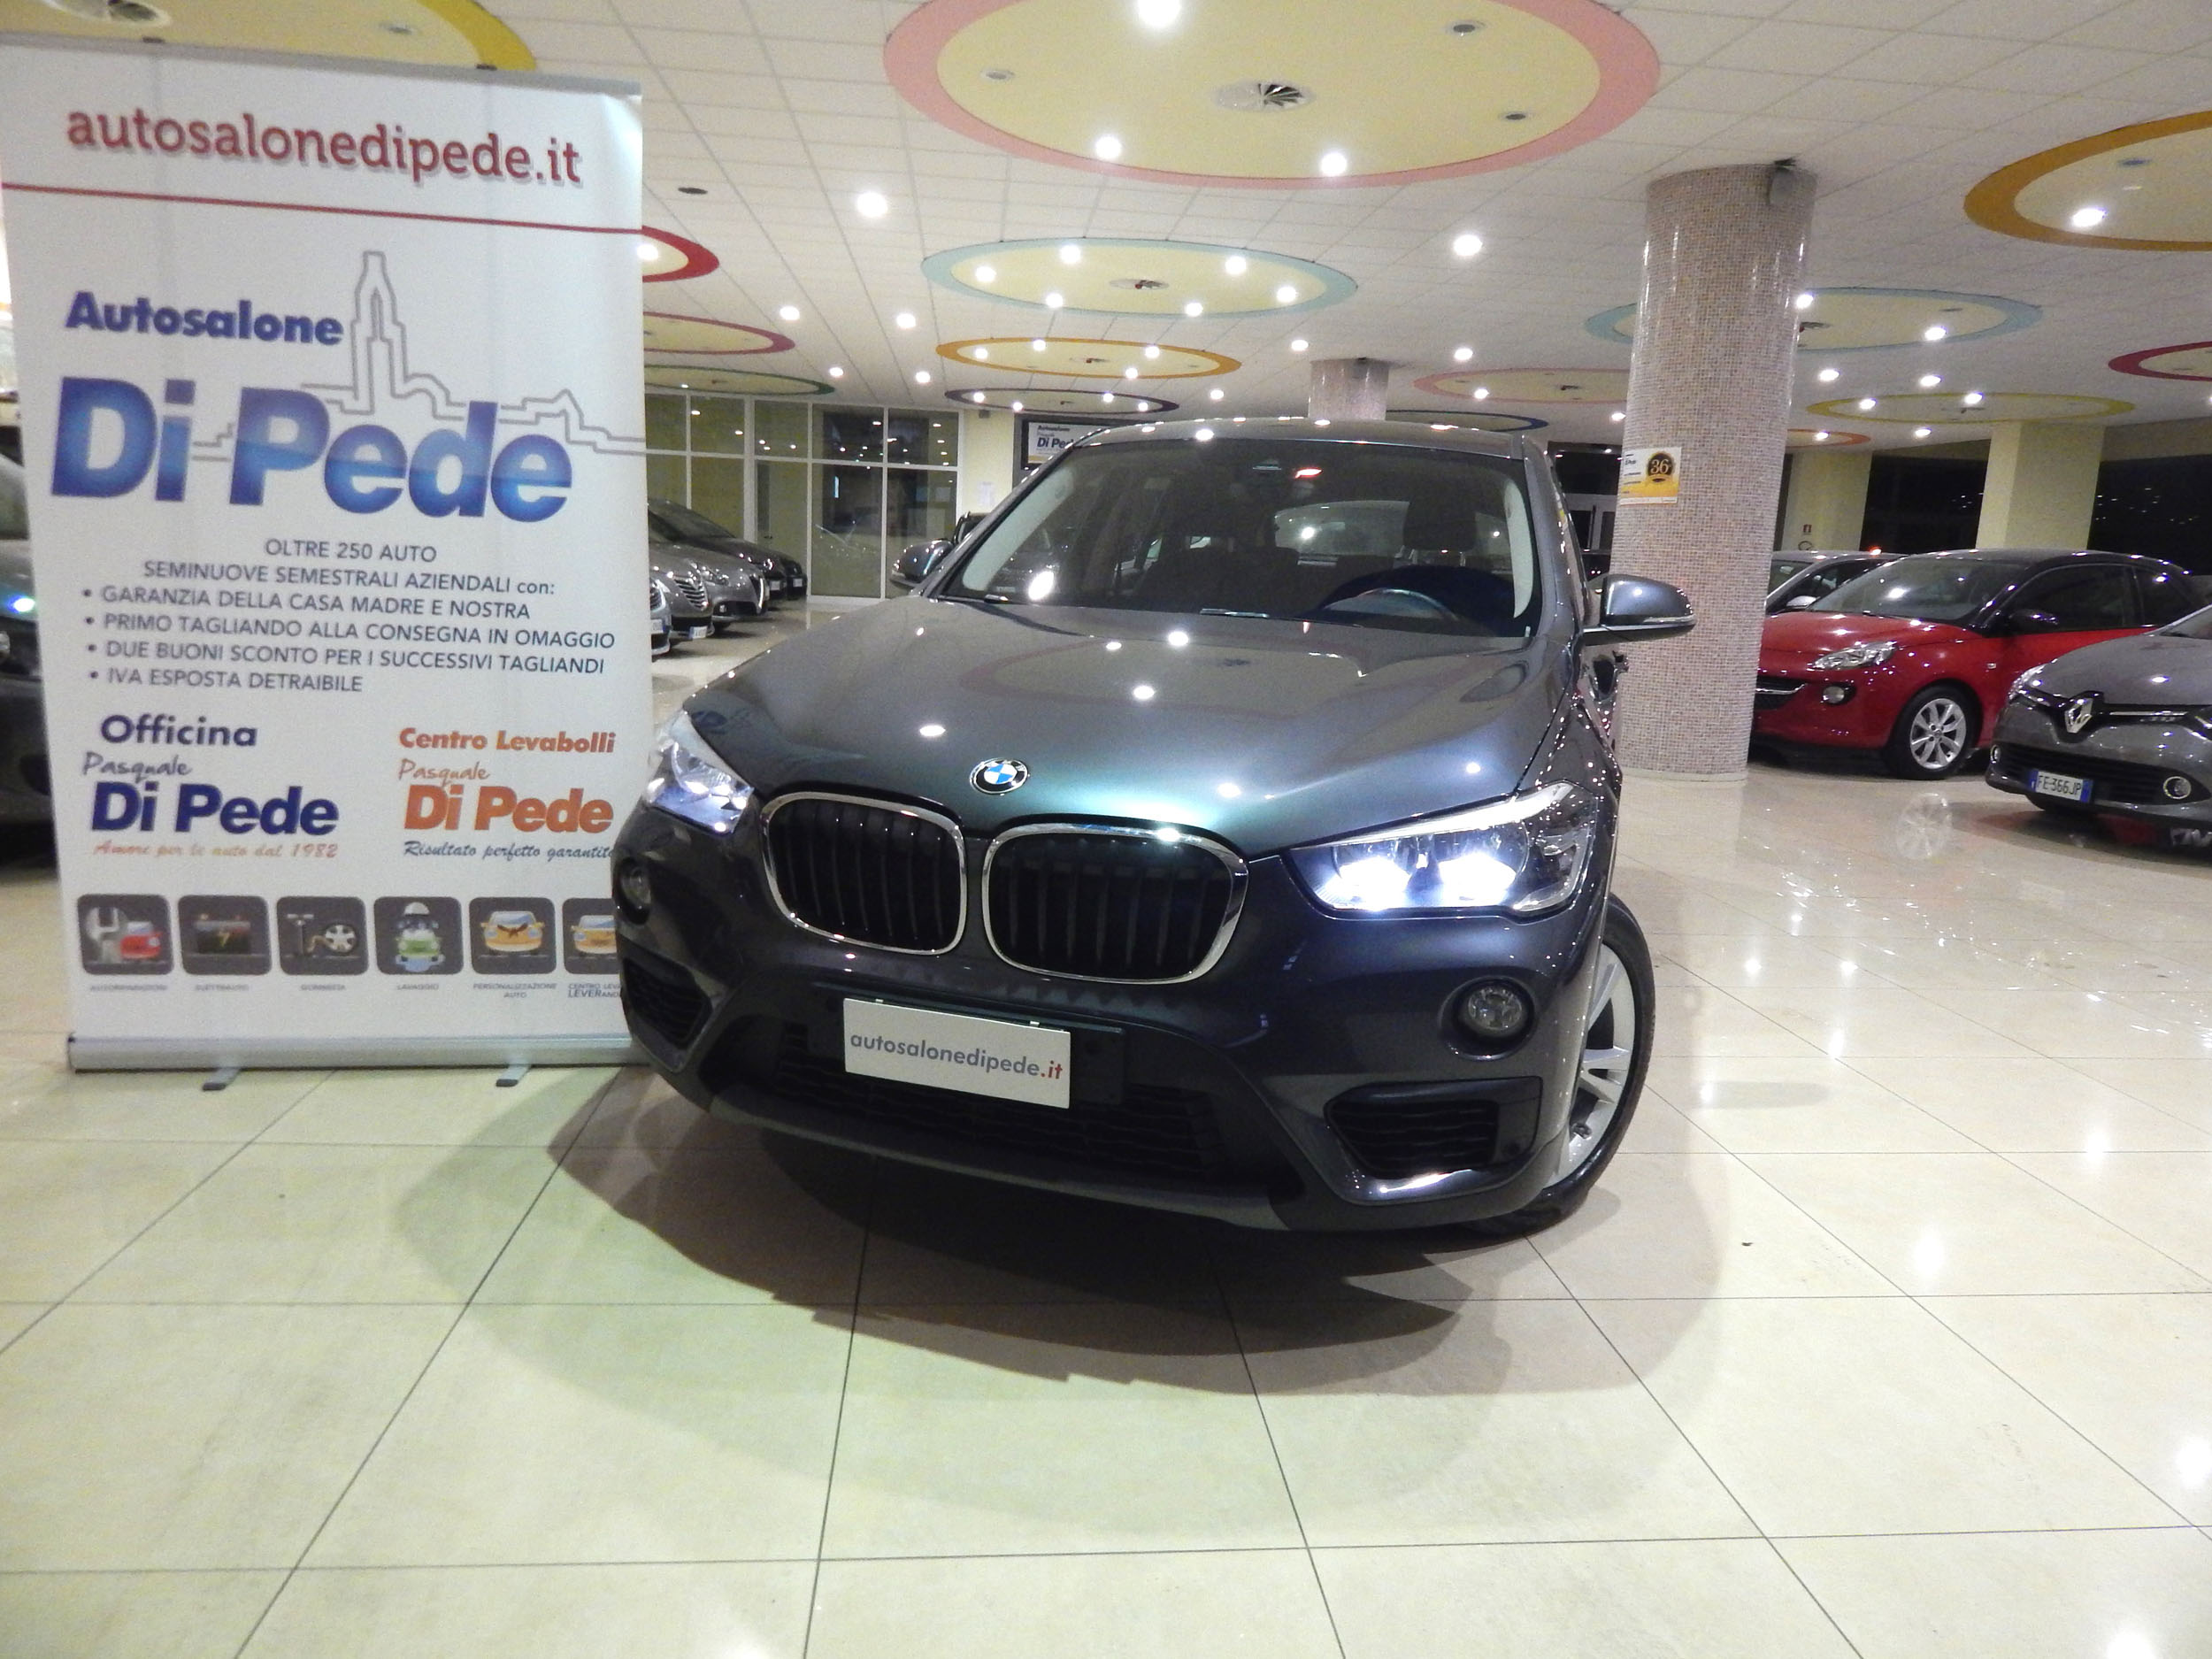 BMW X1 S-drive 1.8d Advantage + Navi